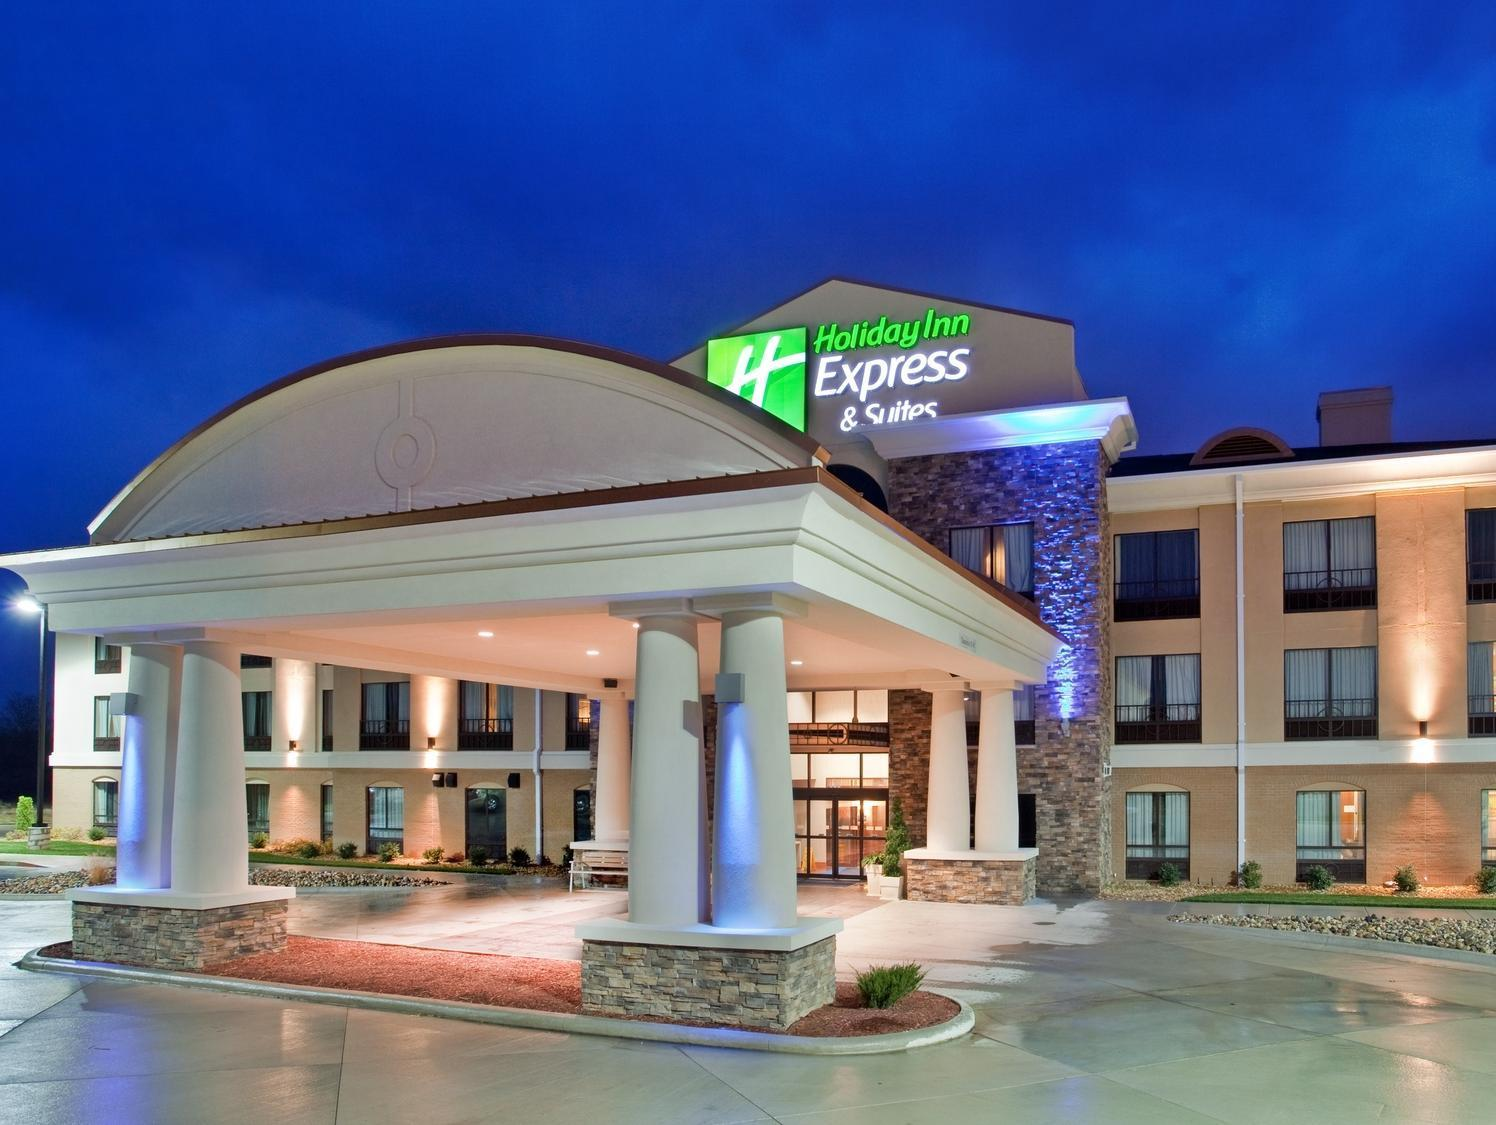 Holiday Inn Express Hotel And Suites Saint Robert St. Robert (MO) United States